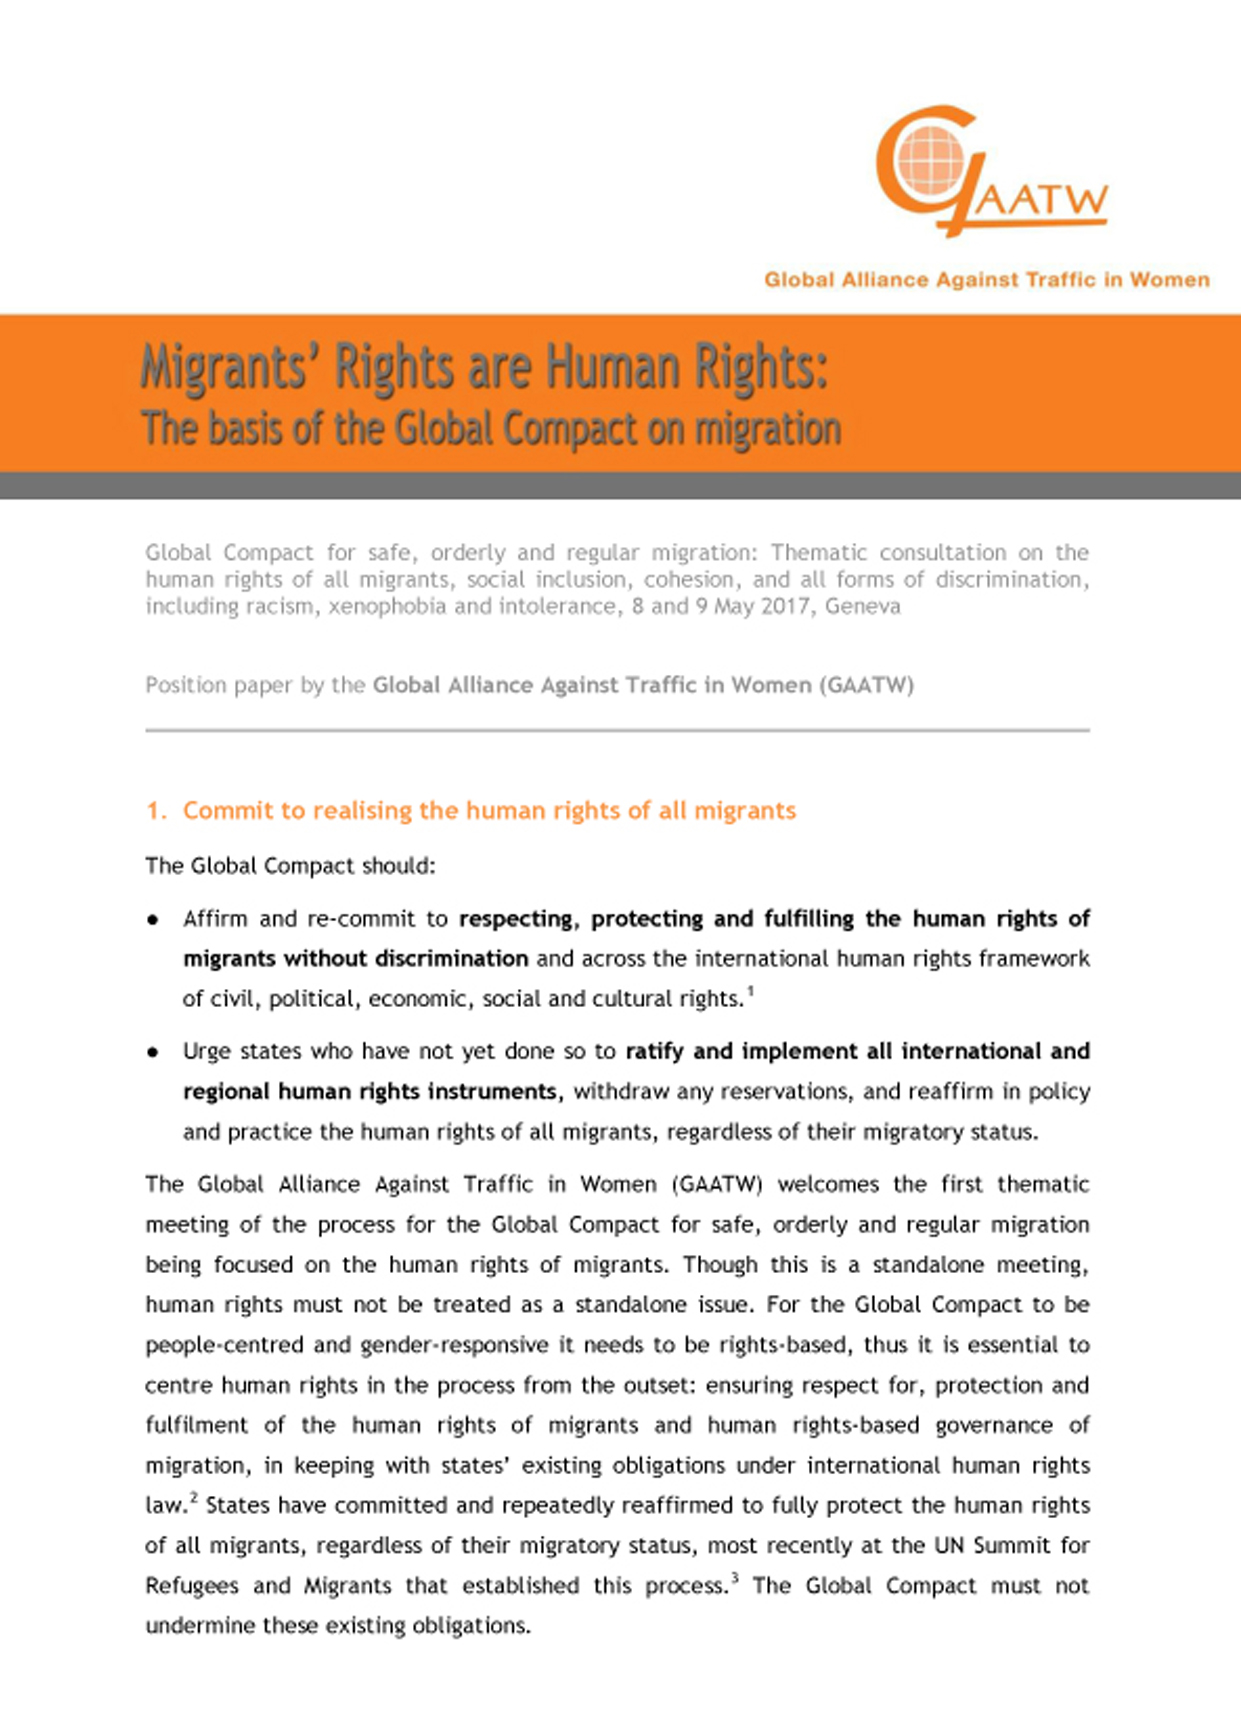 GAATW Position Paper MigrantRightsAreHumanRights GlobalCompact.06